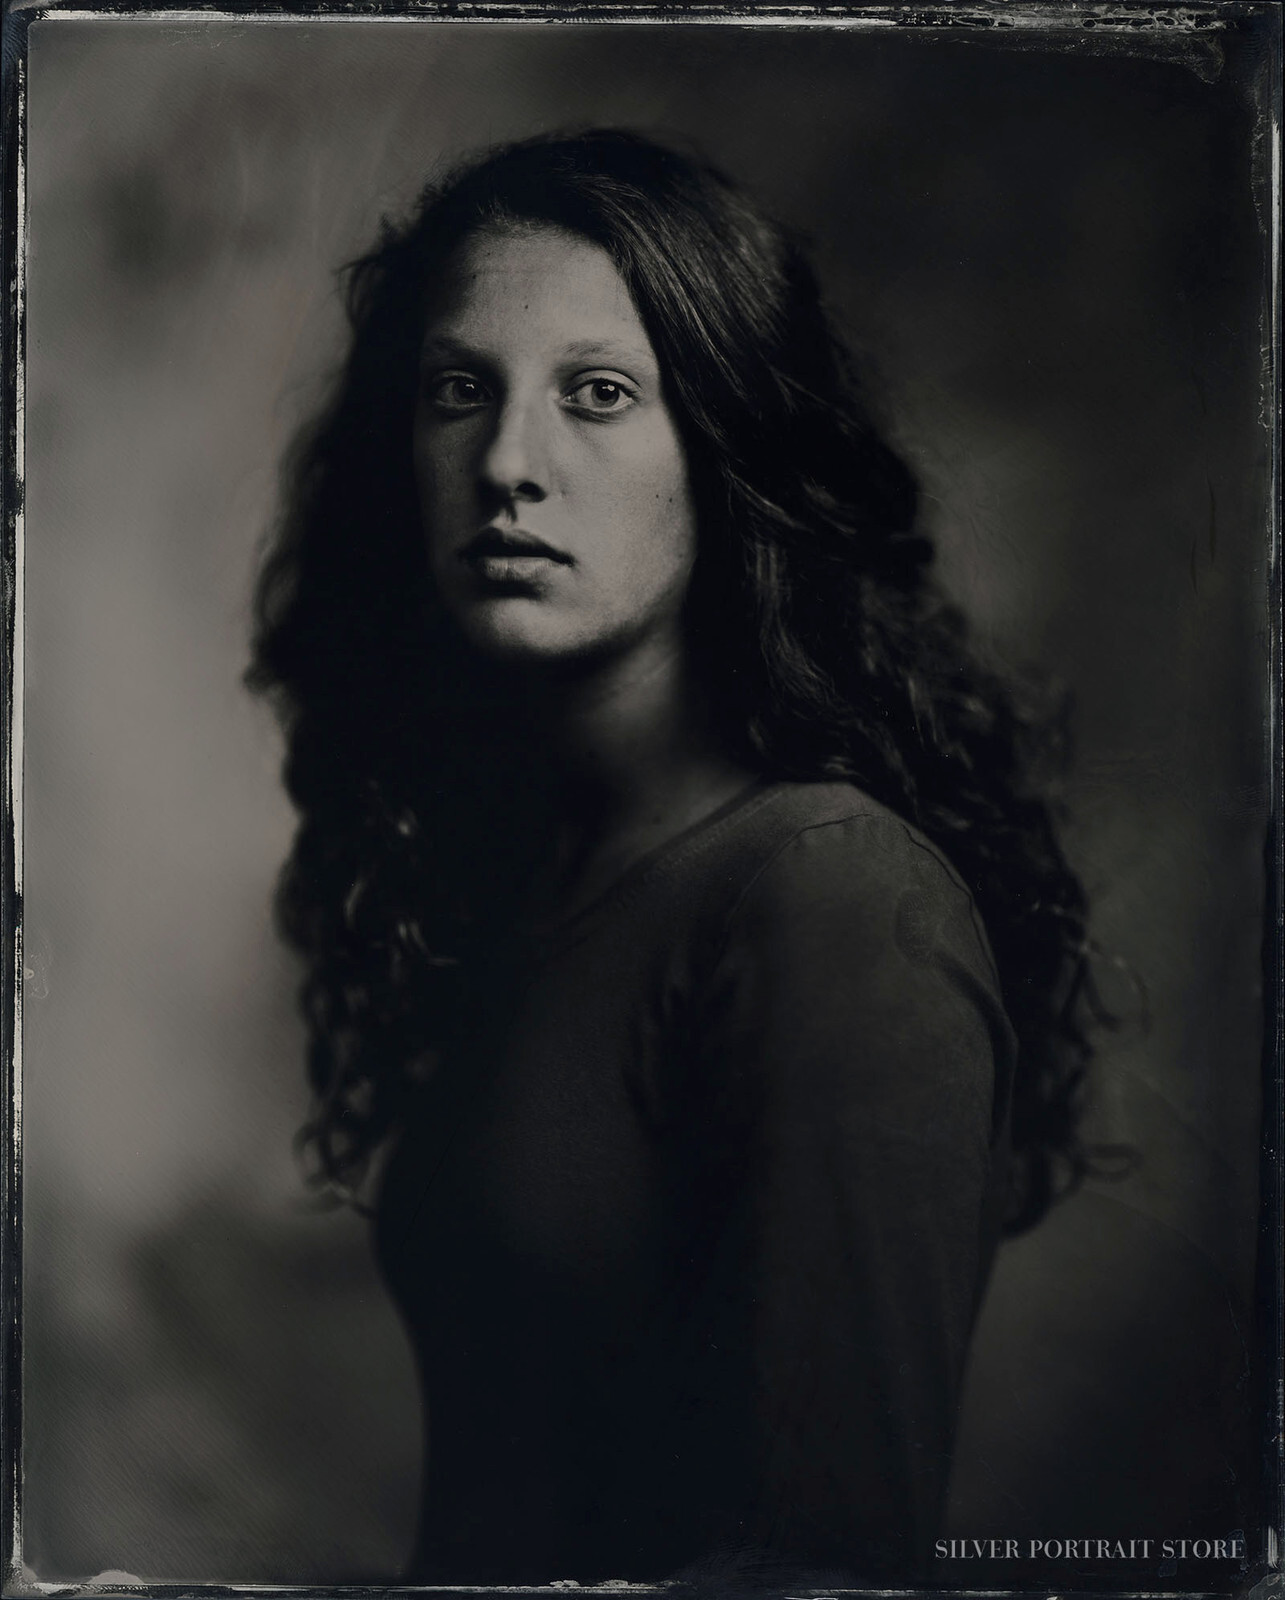 Lois-Silver Portrait Store-scan from Wet plate collodion-Clear glass Ambrotype 20 x 25 cm.